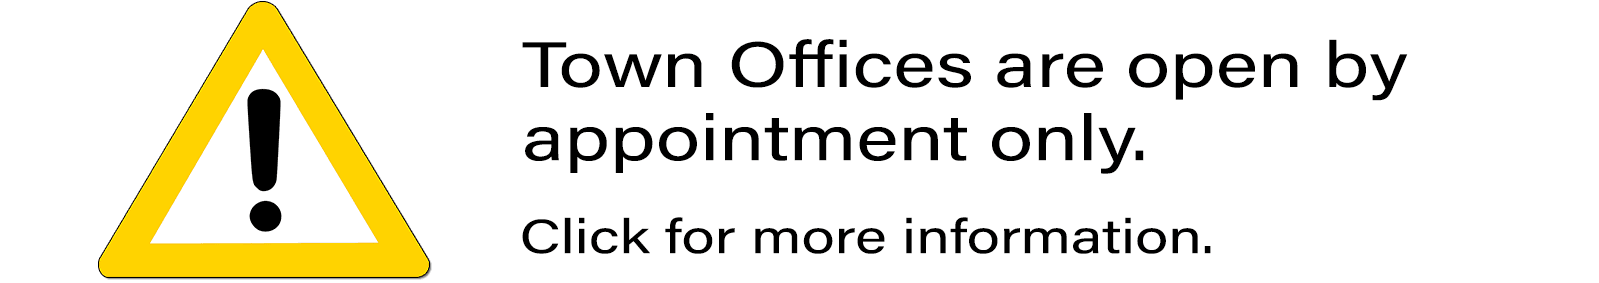 Town Office are open by appointment only. click for more information